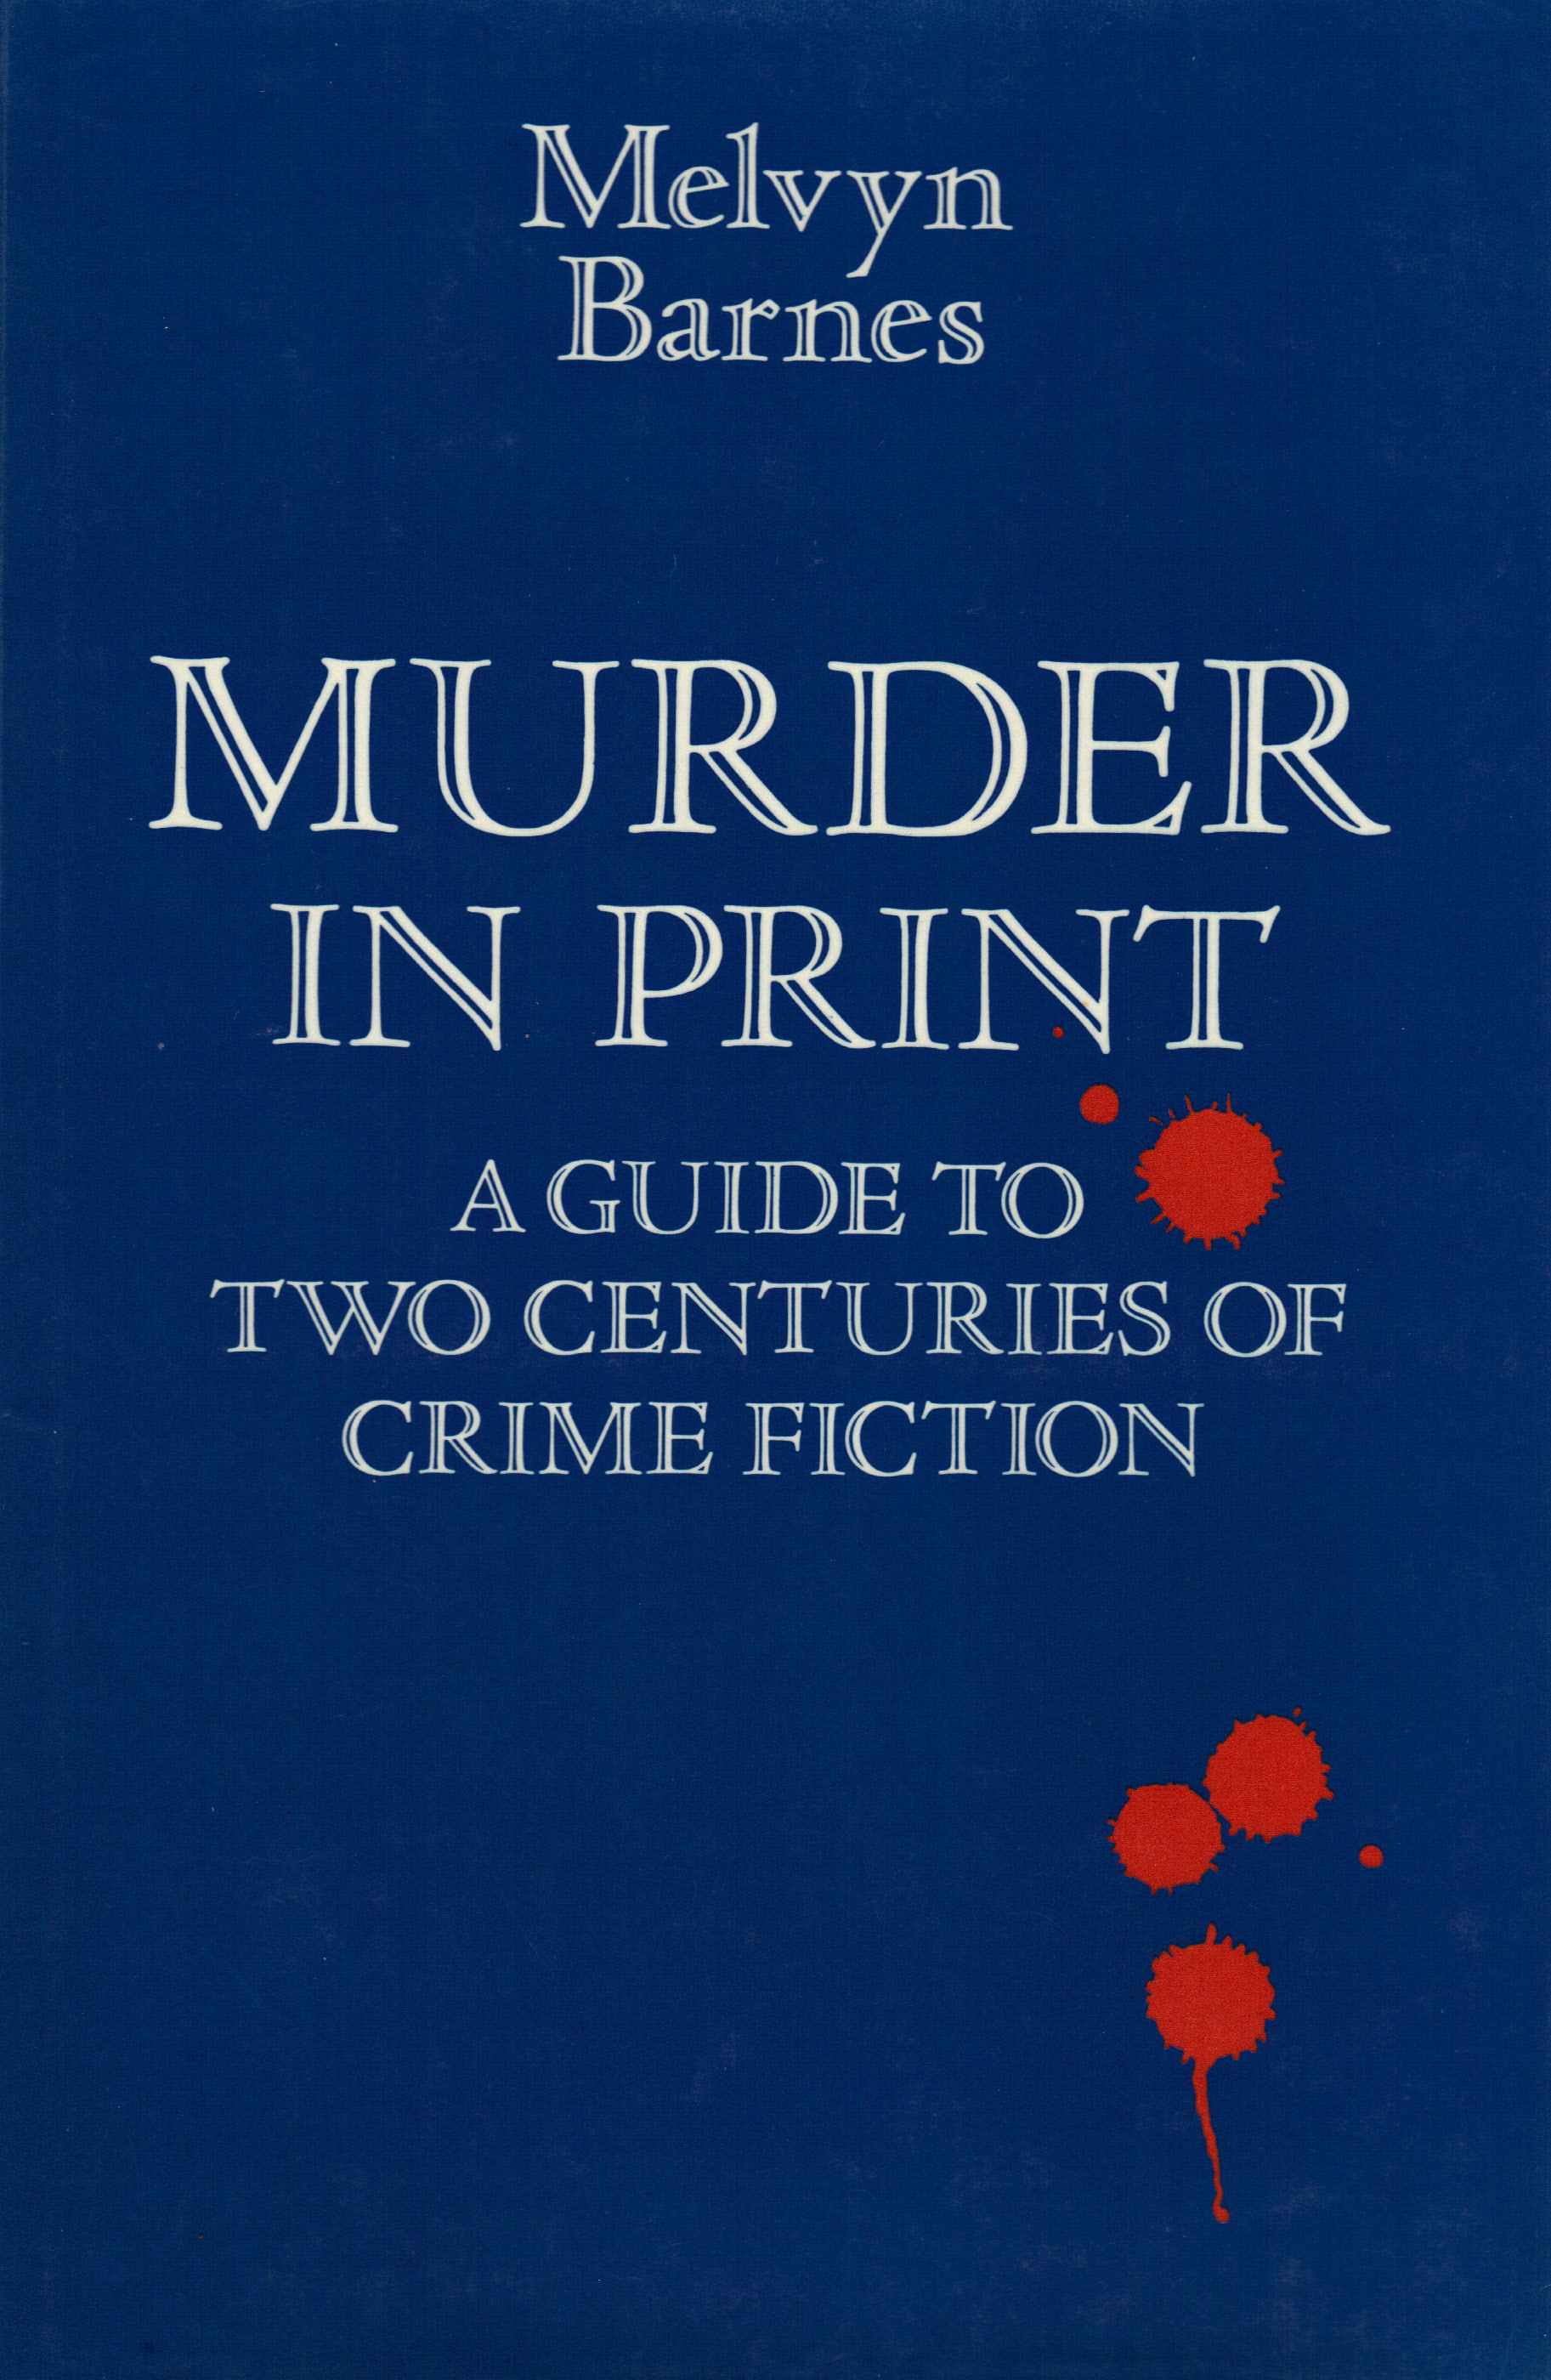 Image for MURDER IN PRINT